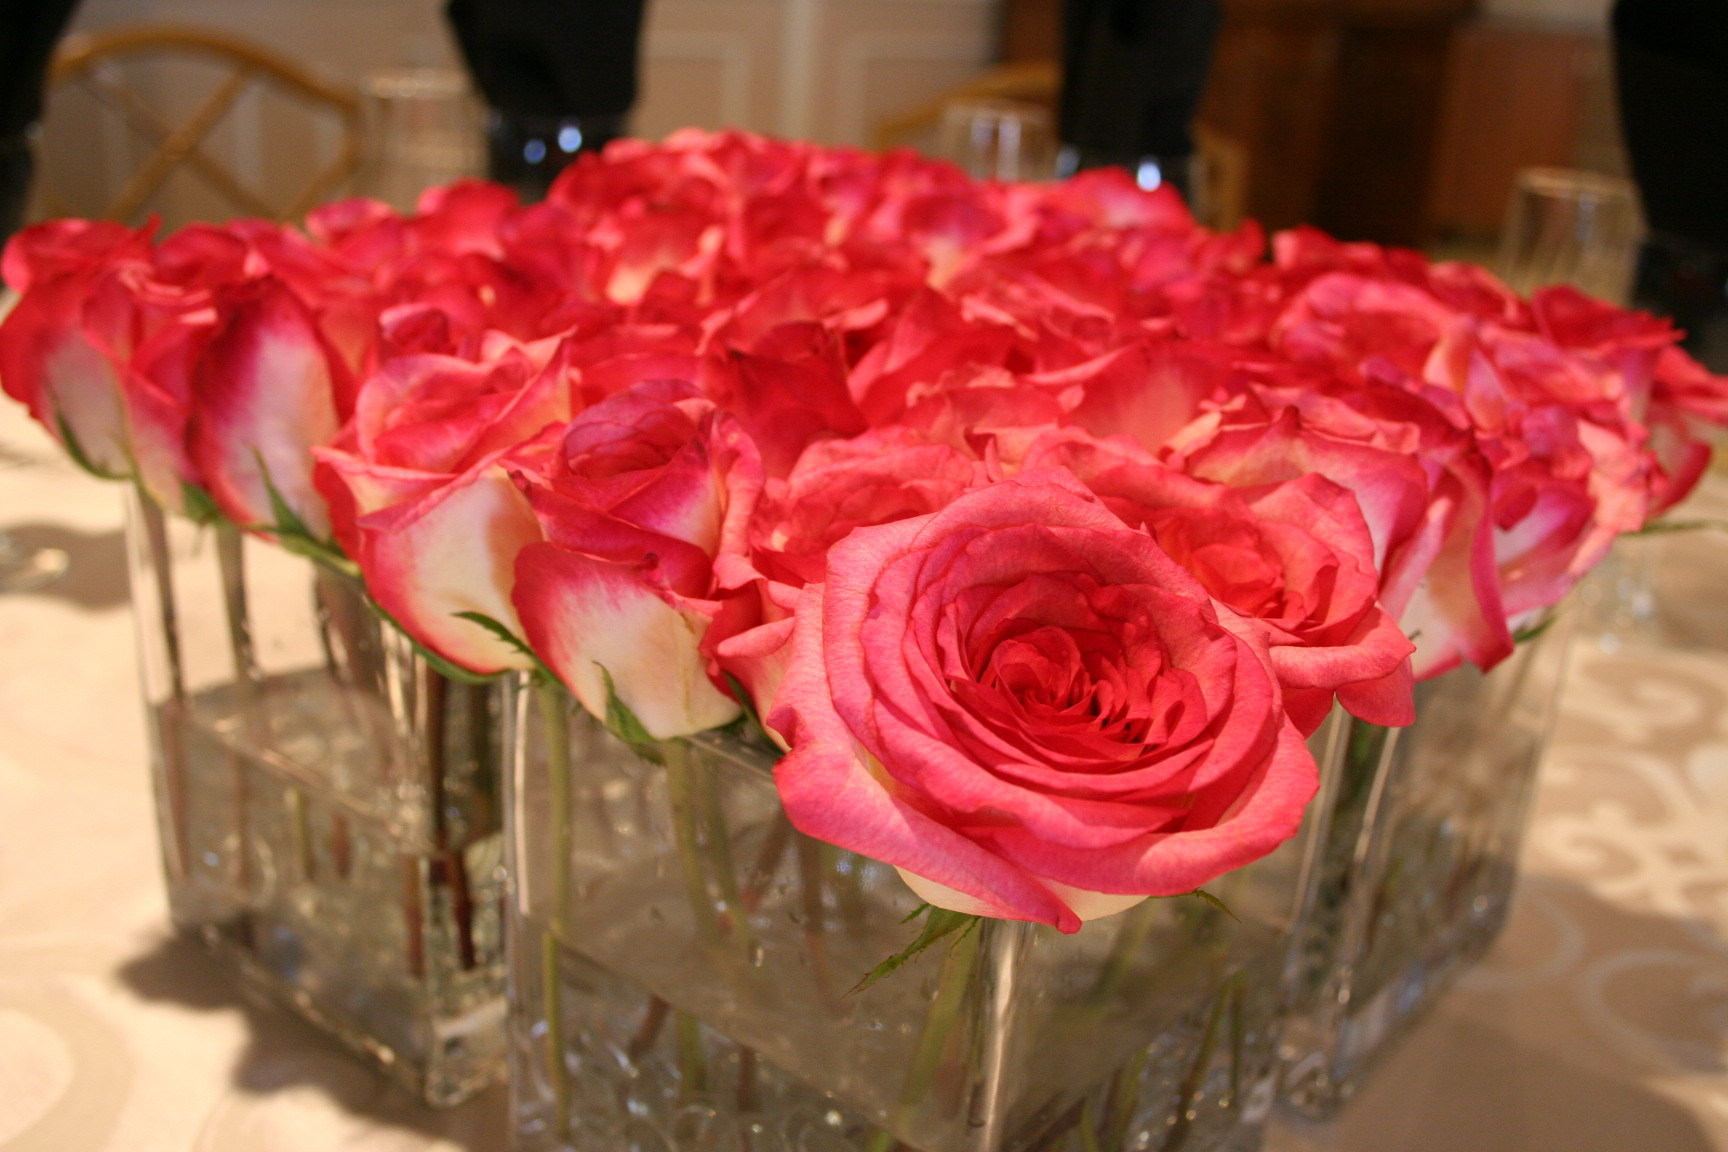 Flowers & Decor, pink, Centerpieces, Flowers, Roses, Centerpiece, Table, Unique, Floral, Designer, Design, Glass, Florist, Maria, Masterson